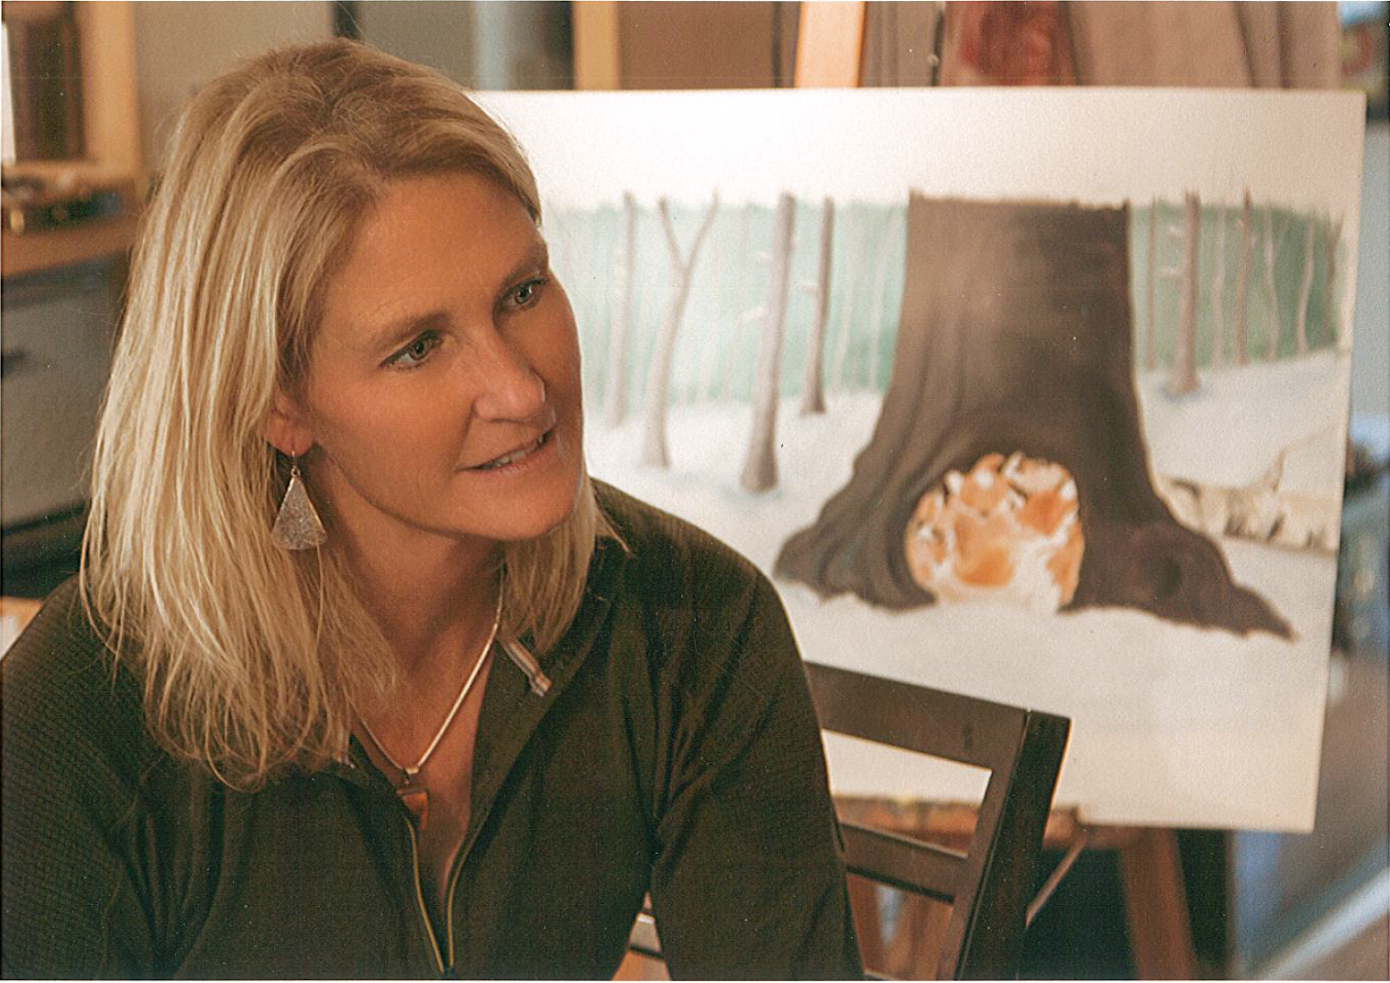 Heather Lynn Harris - Heather earned her Master of Fine Arts degree from San Francisco's Academy of Art University. She paints landscape, figure, and portrait, but her favorite is children's picture book art. She enjoys creating art that engages and delights children through the telling of a story. She has three published picture books: The Swing, Clover and The Shooting Star, and Five Hungry Mice. She plans to continue to create pictures and stories for children as long as there are children who love stories and pictures.See more of Heather's illustration work here.